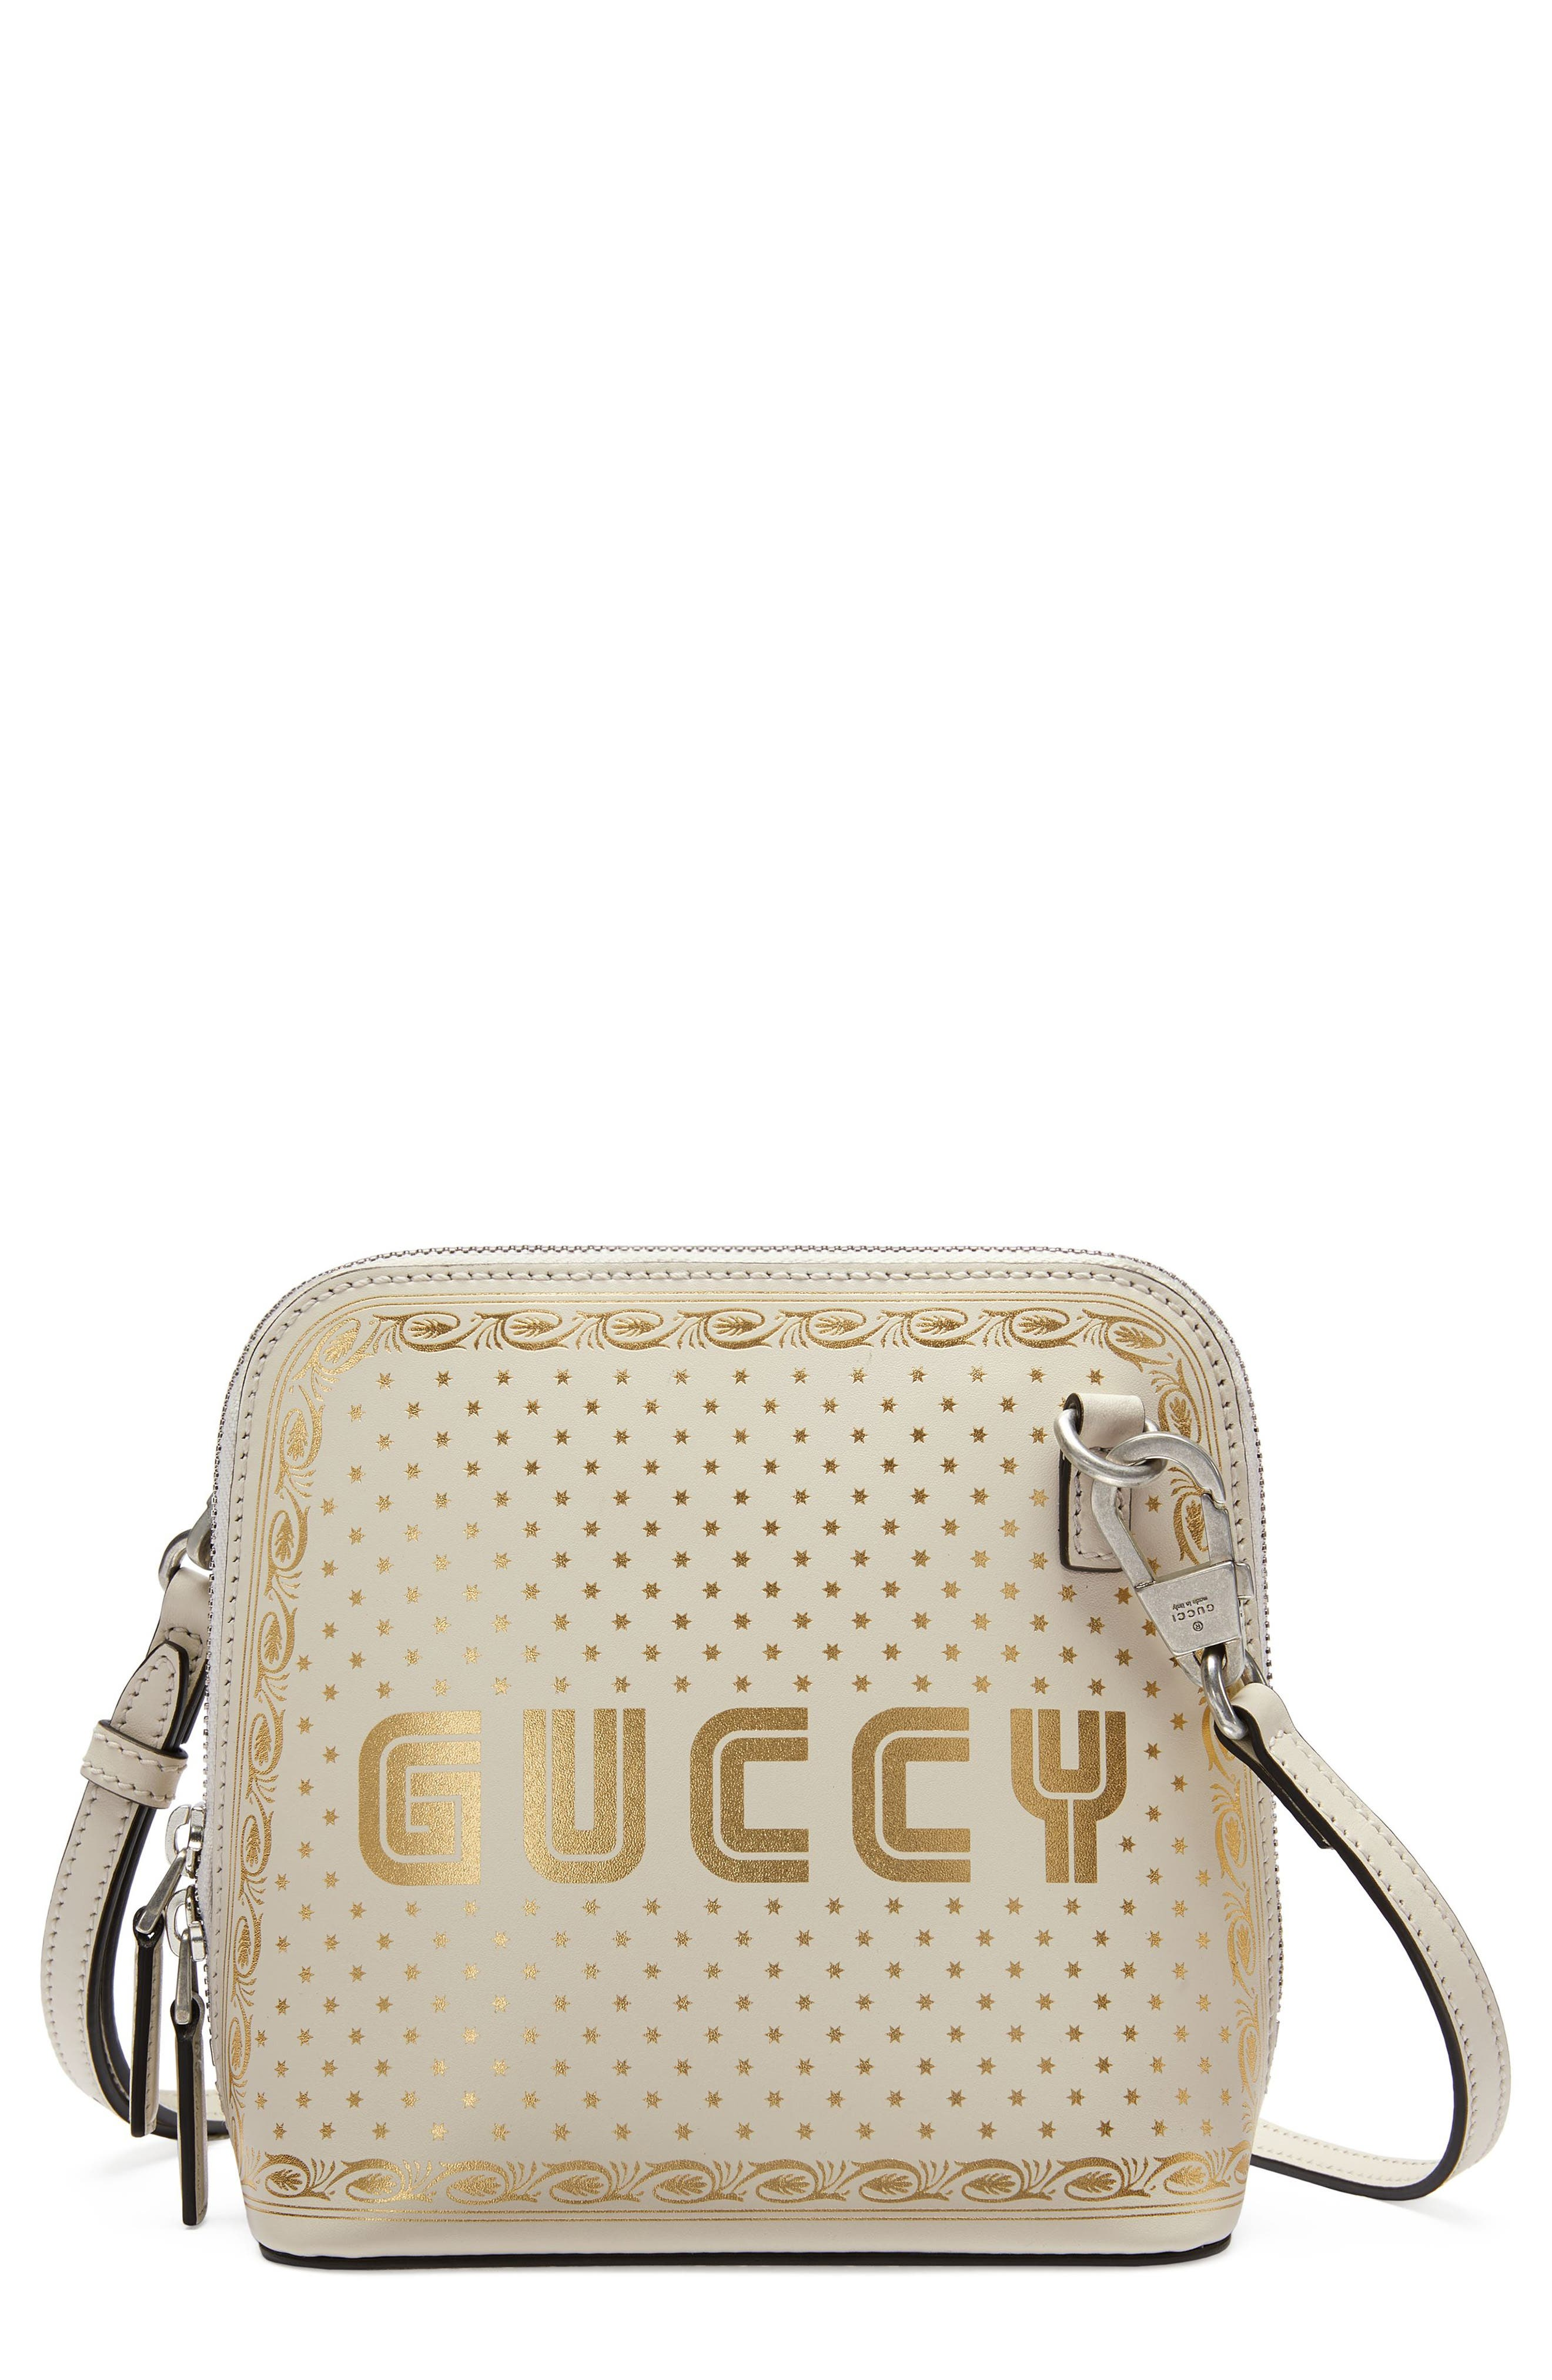 Alternate Image 1 Selected - Gucci Guccy Logo Moon & Stars Leather Crossbody Bag